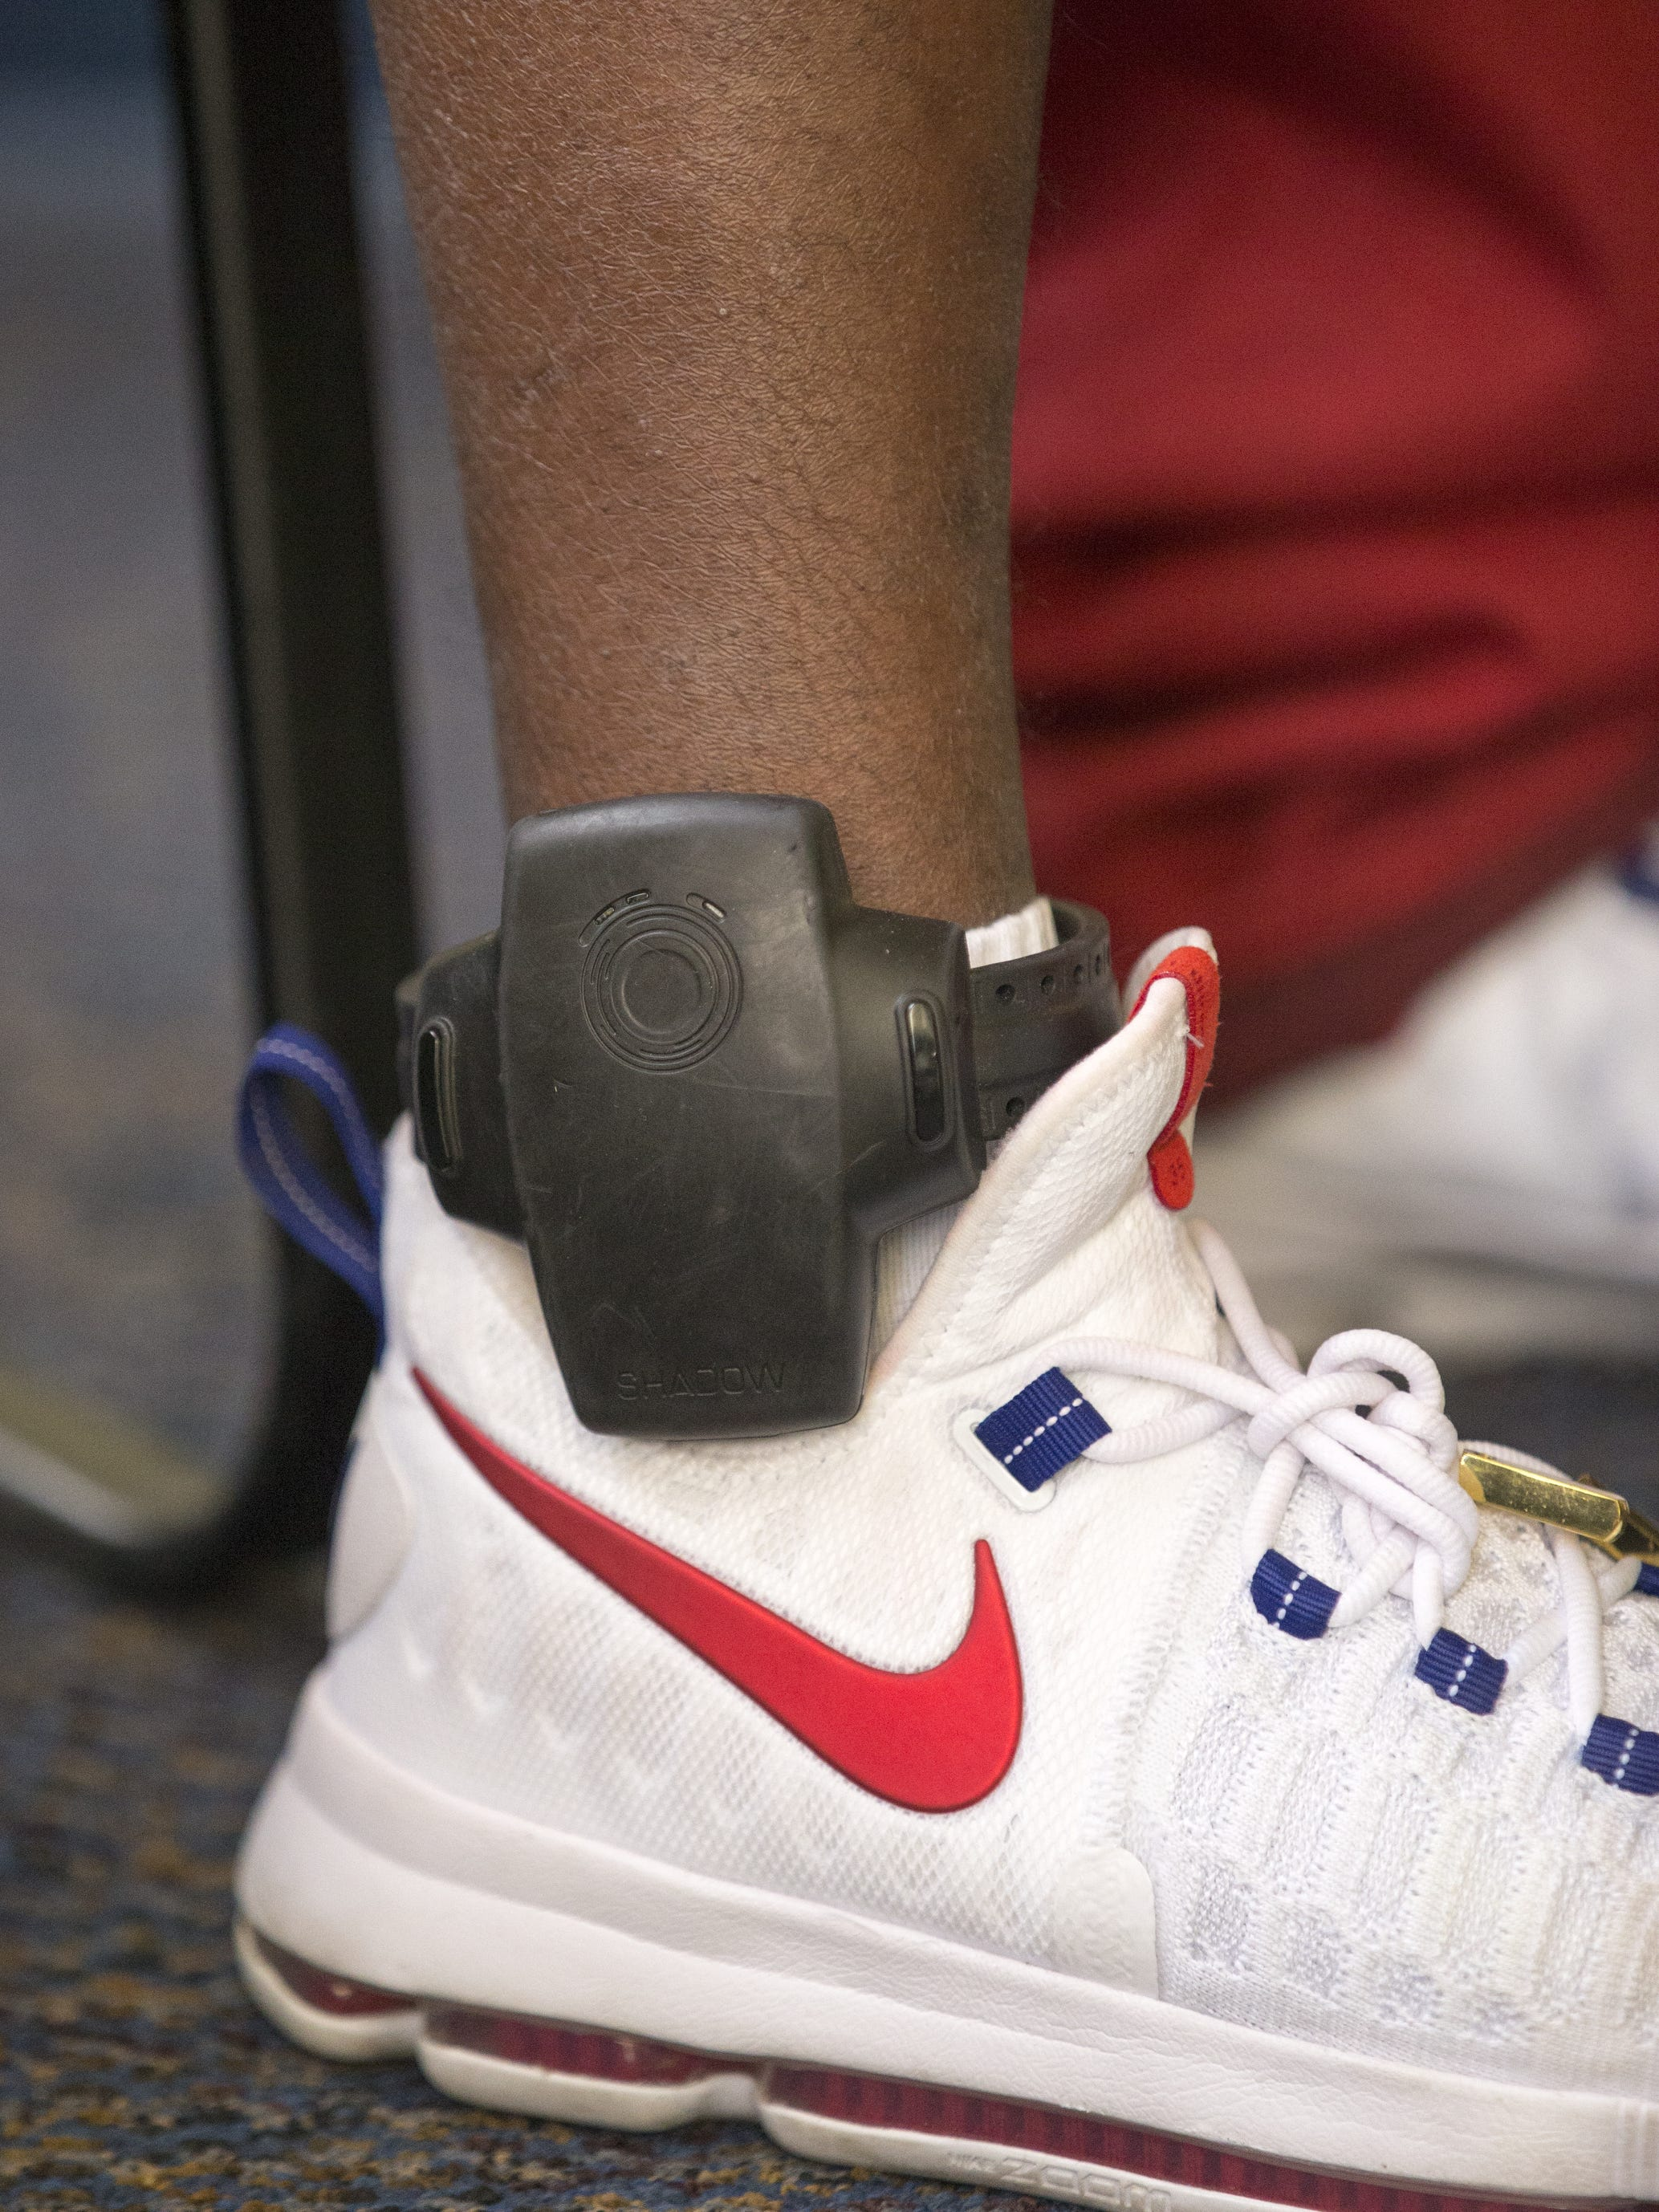 Gps Ankle Bracelet Company Booming In Indy